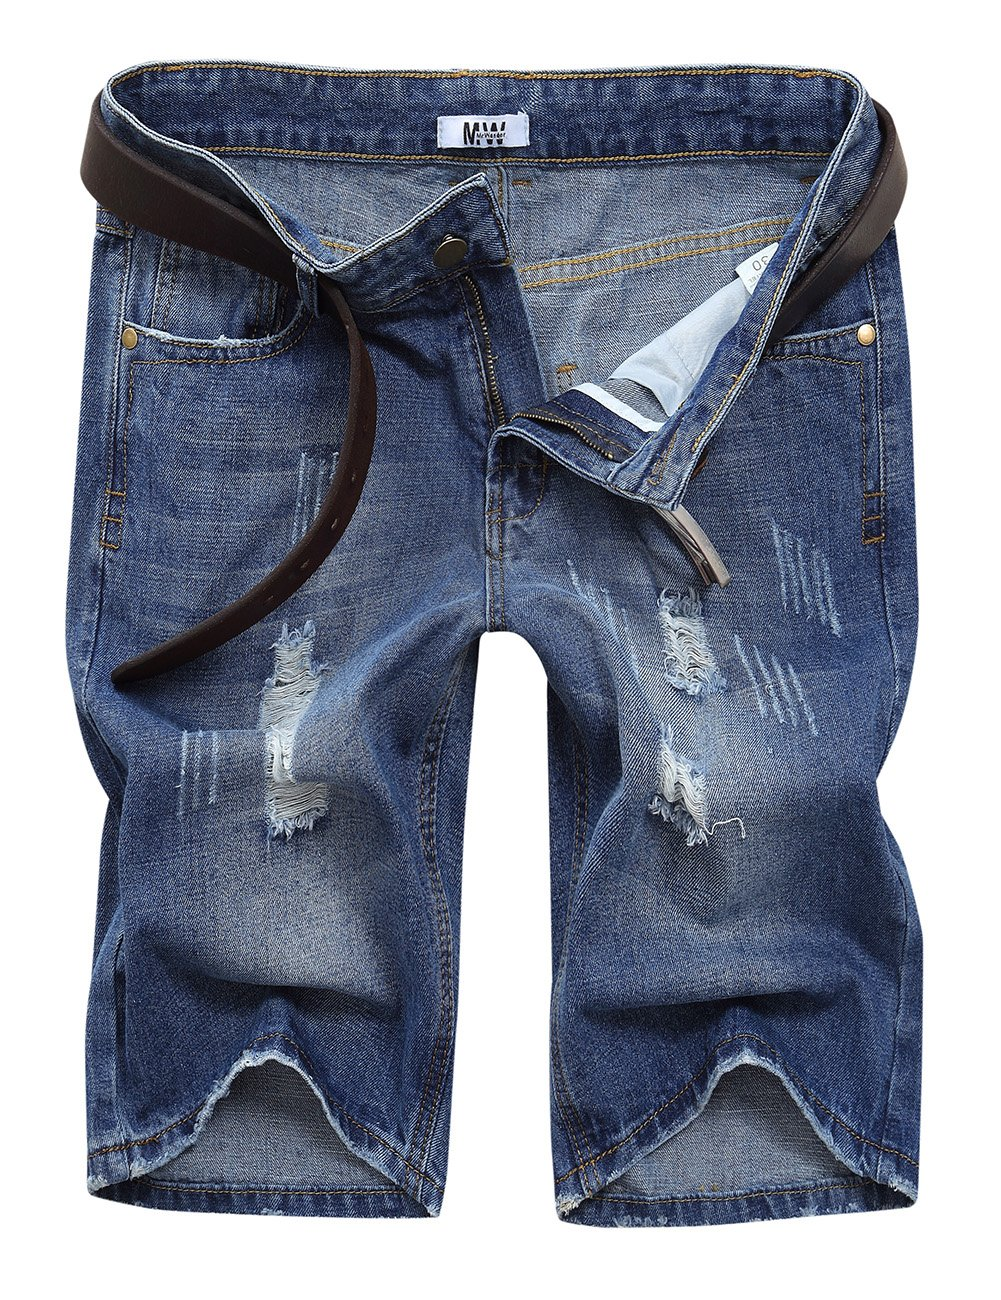 MrWonder Men's Fashion Ripped Distressed Straight Fit Denim Shorts with 5 Pockets Deep Blue 34